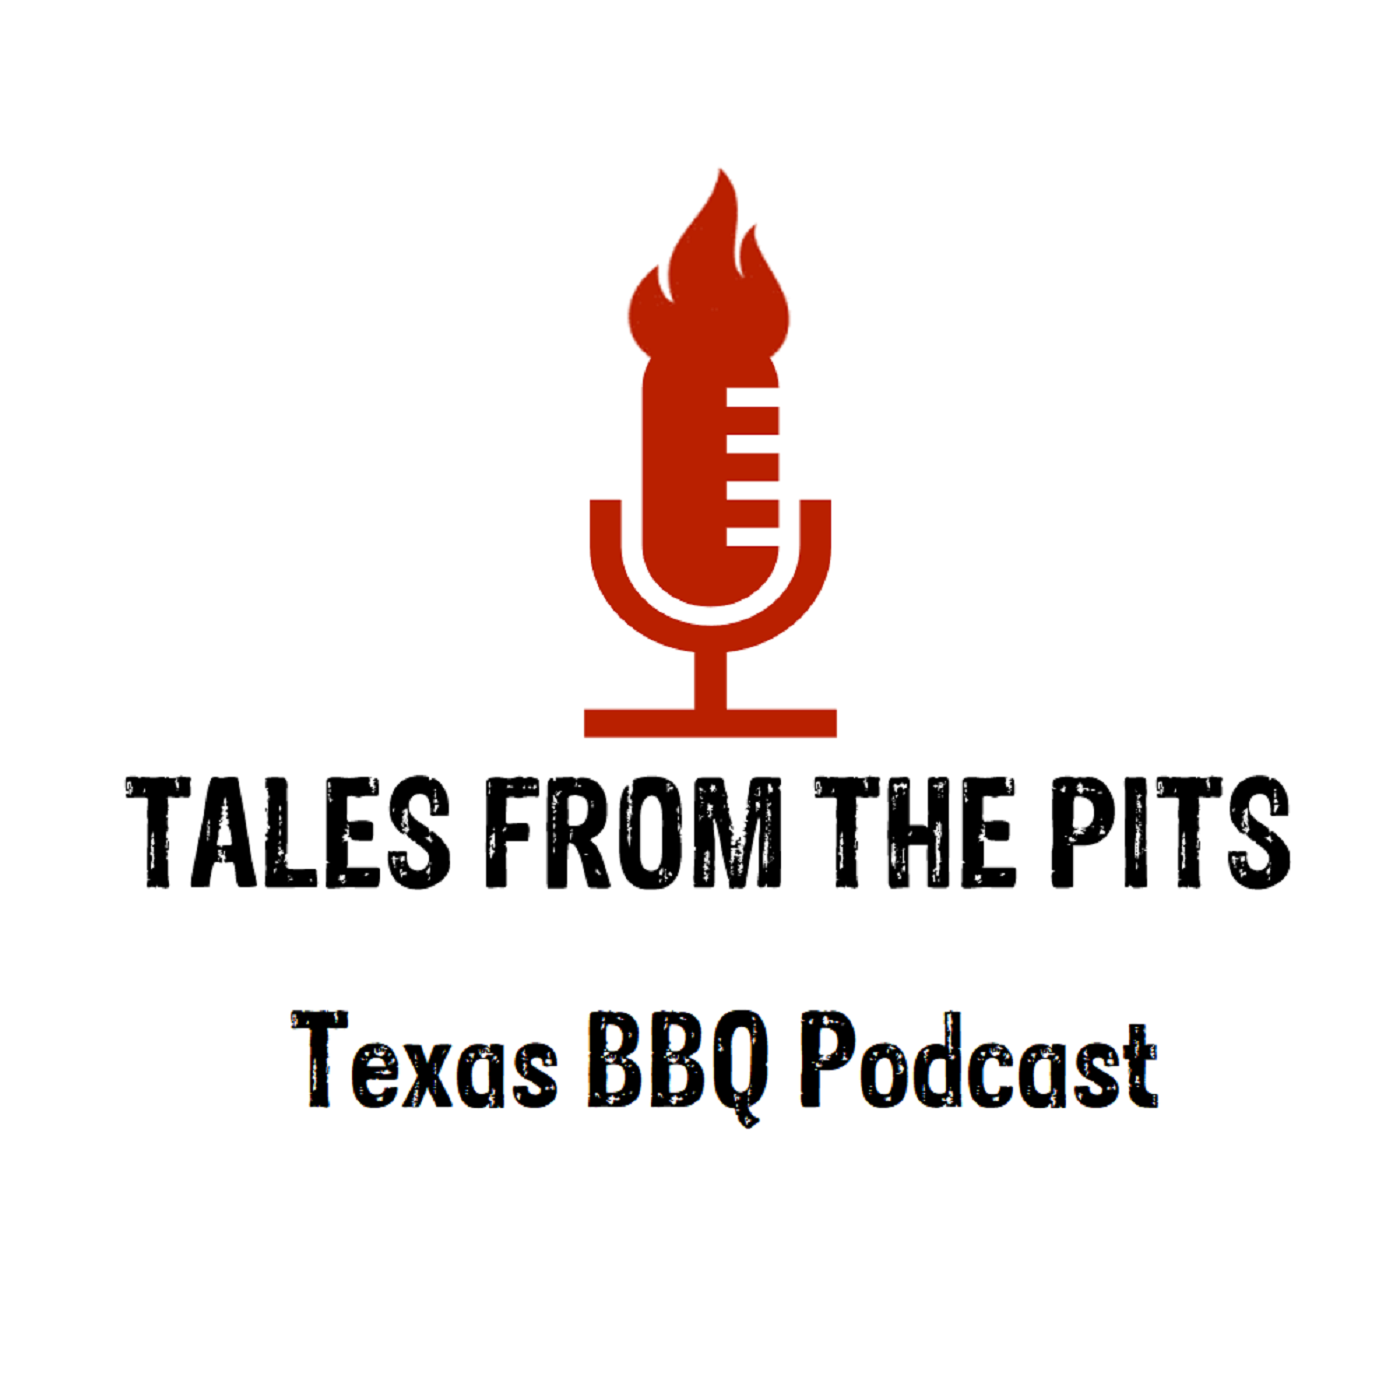 Tales from the pits, a Texas BBQ podcast featuring trendsetters, leaders, and icons from the barbecue industry